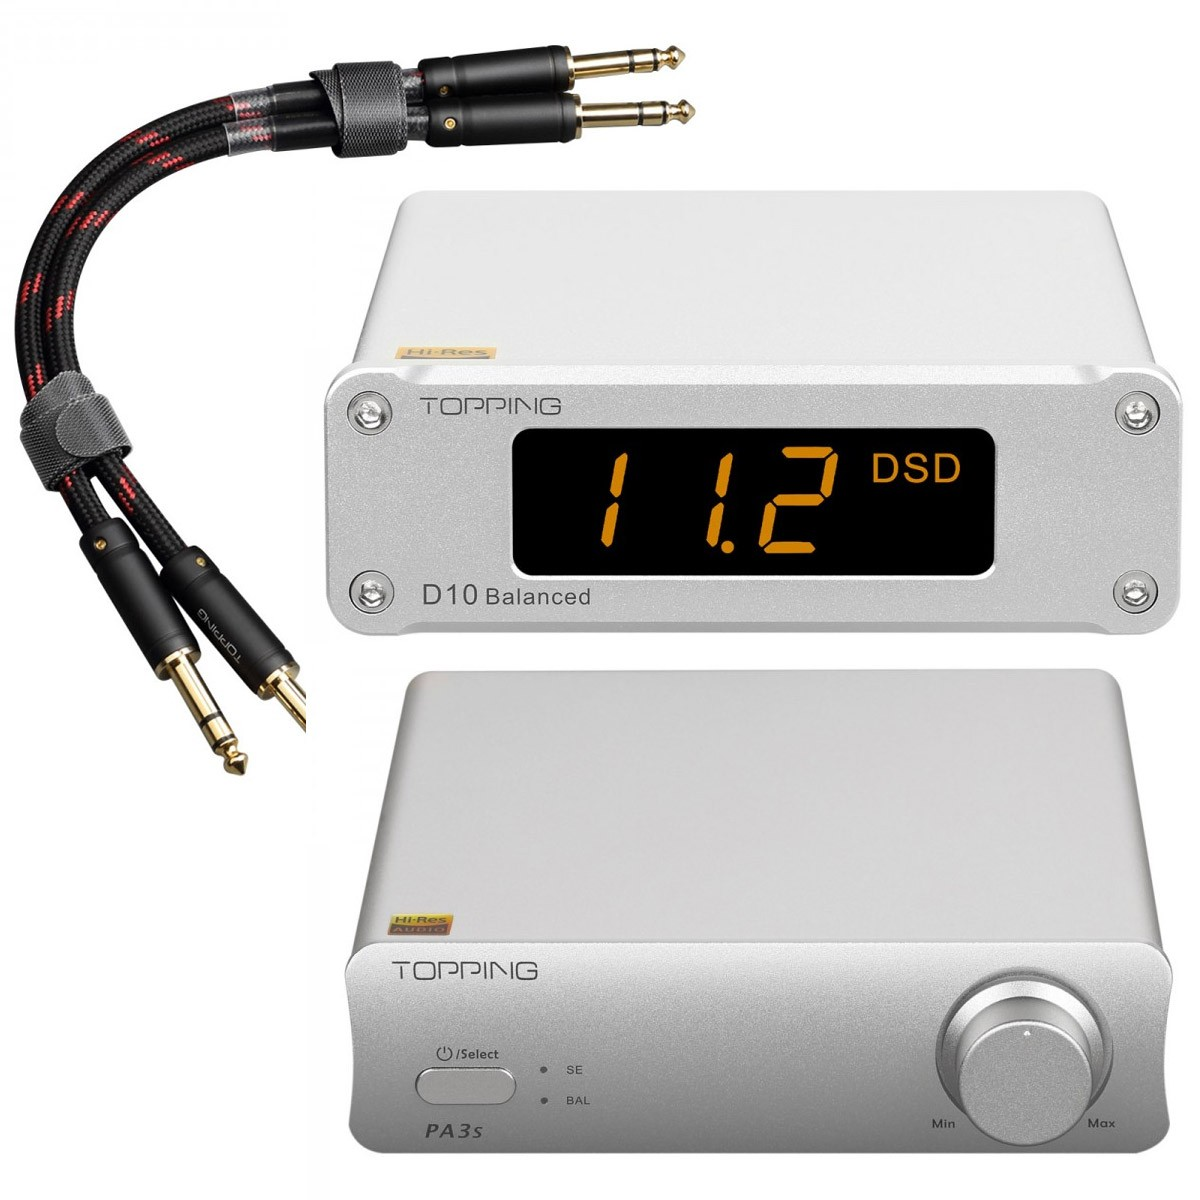 Pack Topping PA3S Class D Amplifier + D10 Balanced DAC + TCT1 Jack 6.35mm Cables Silver